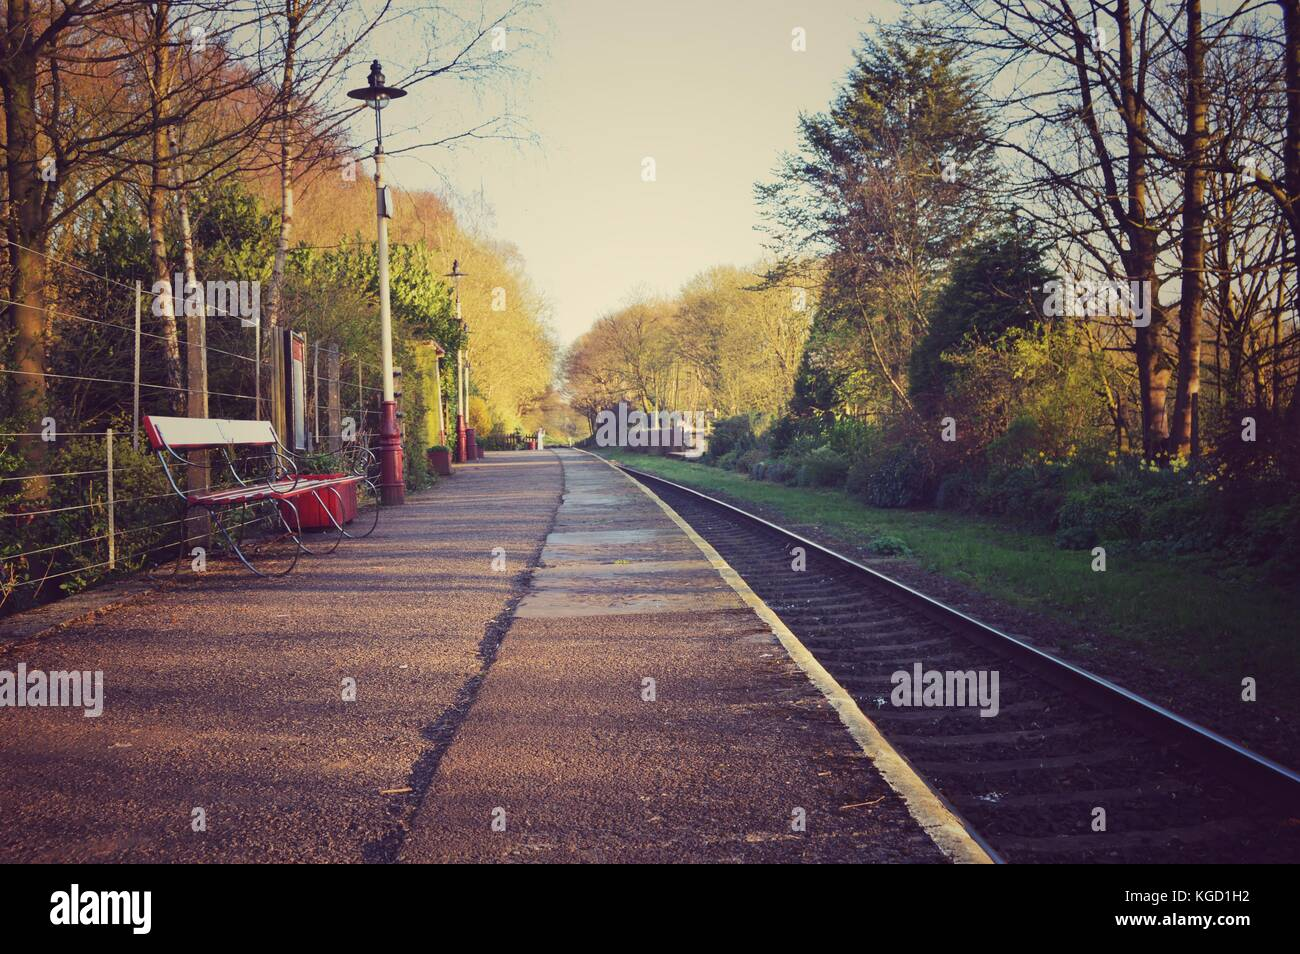 View down the platform at Summerseat station on the East Lancashire Railway Stock Photo